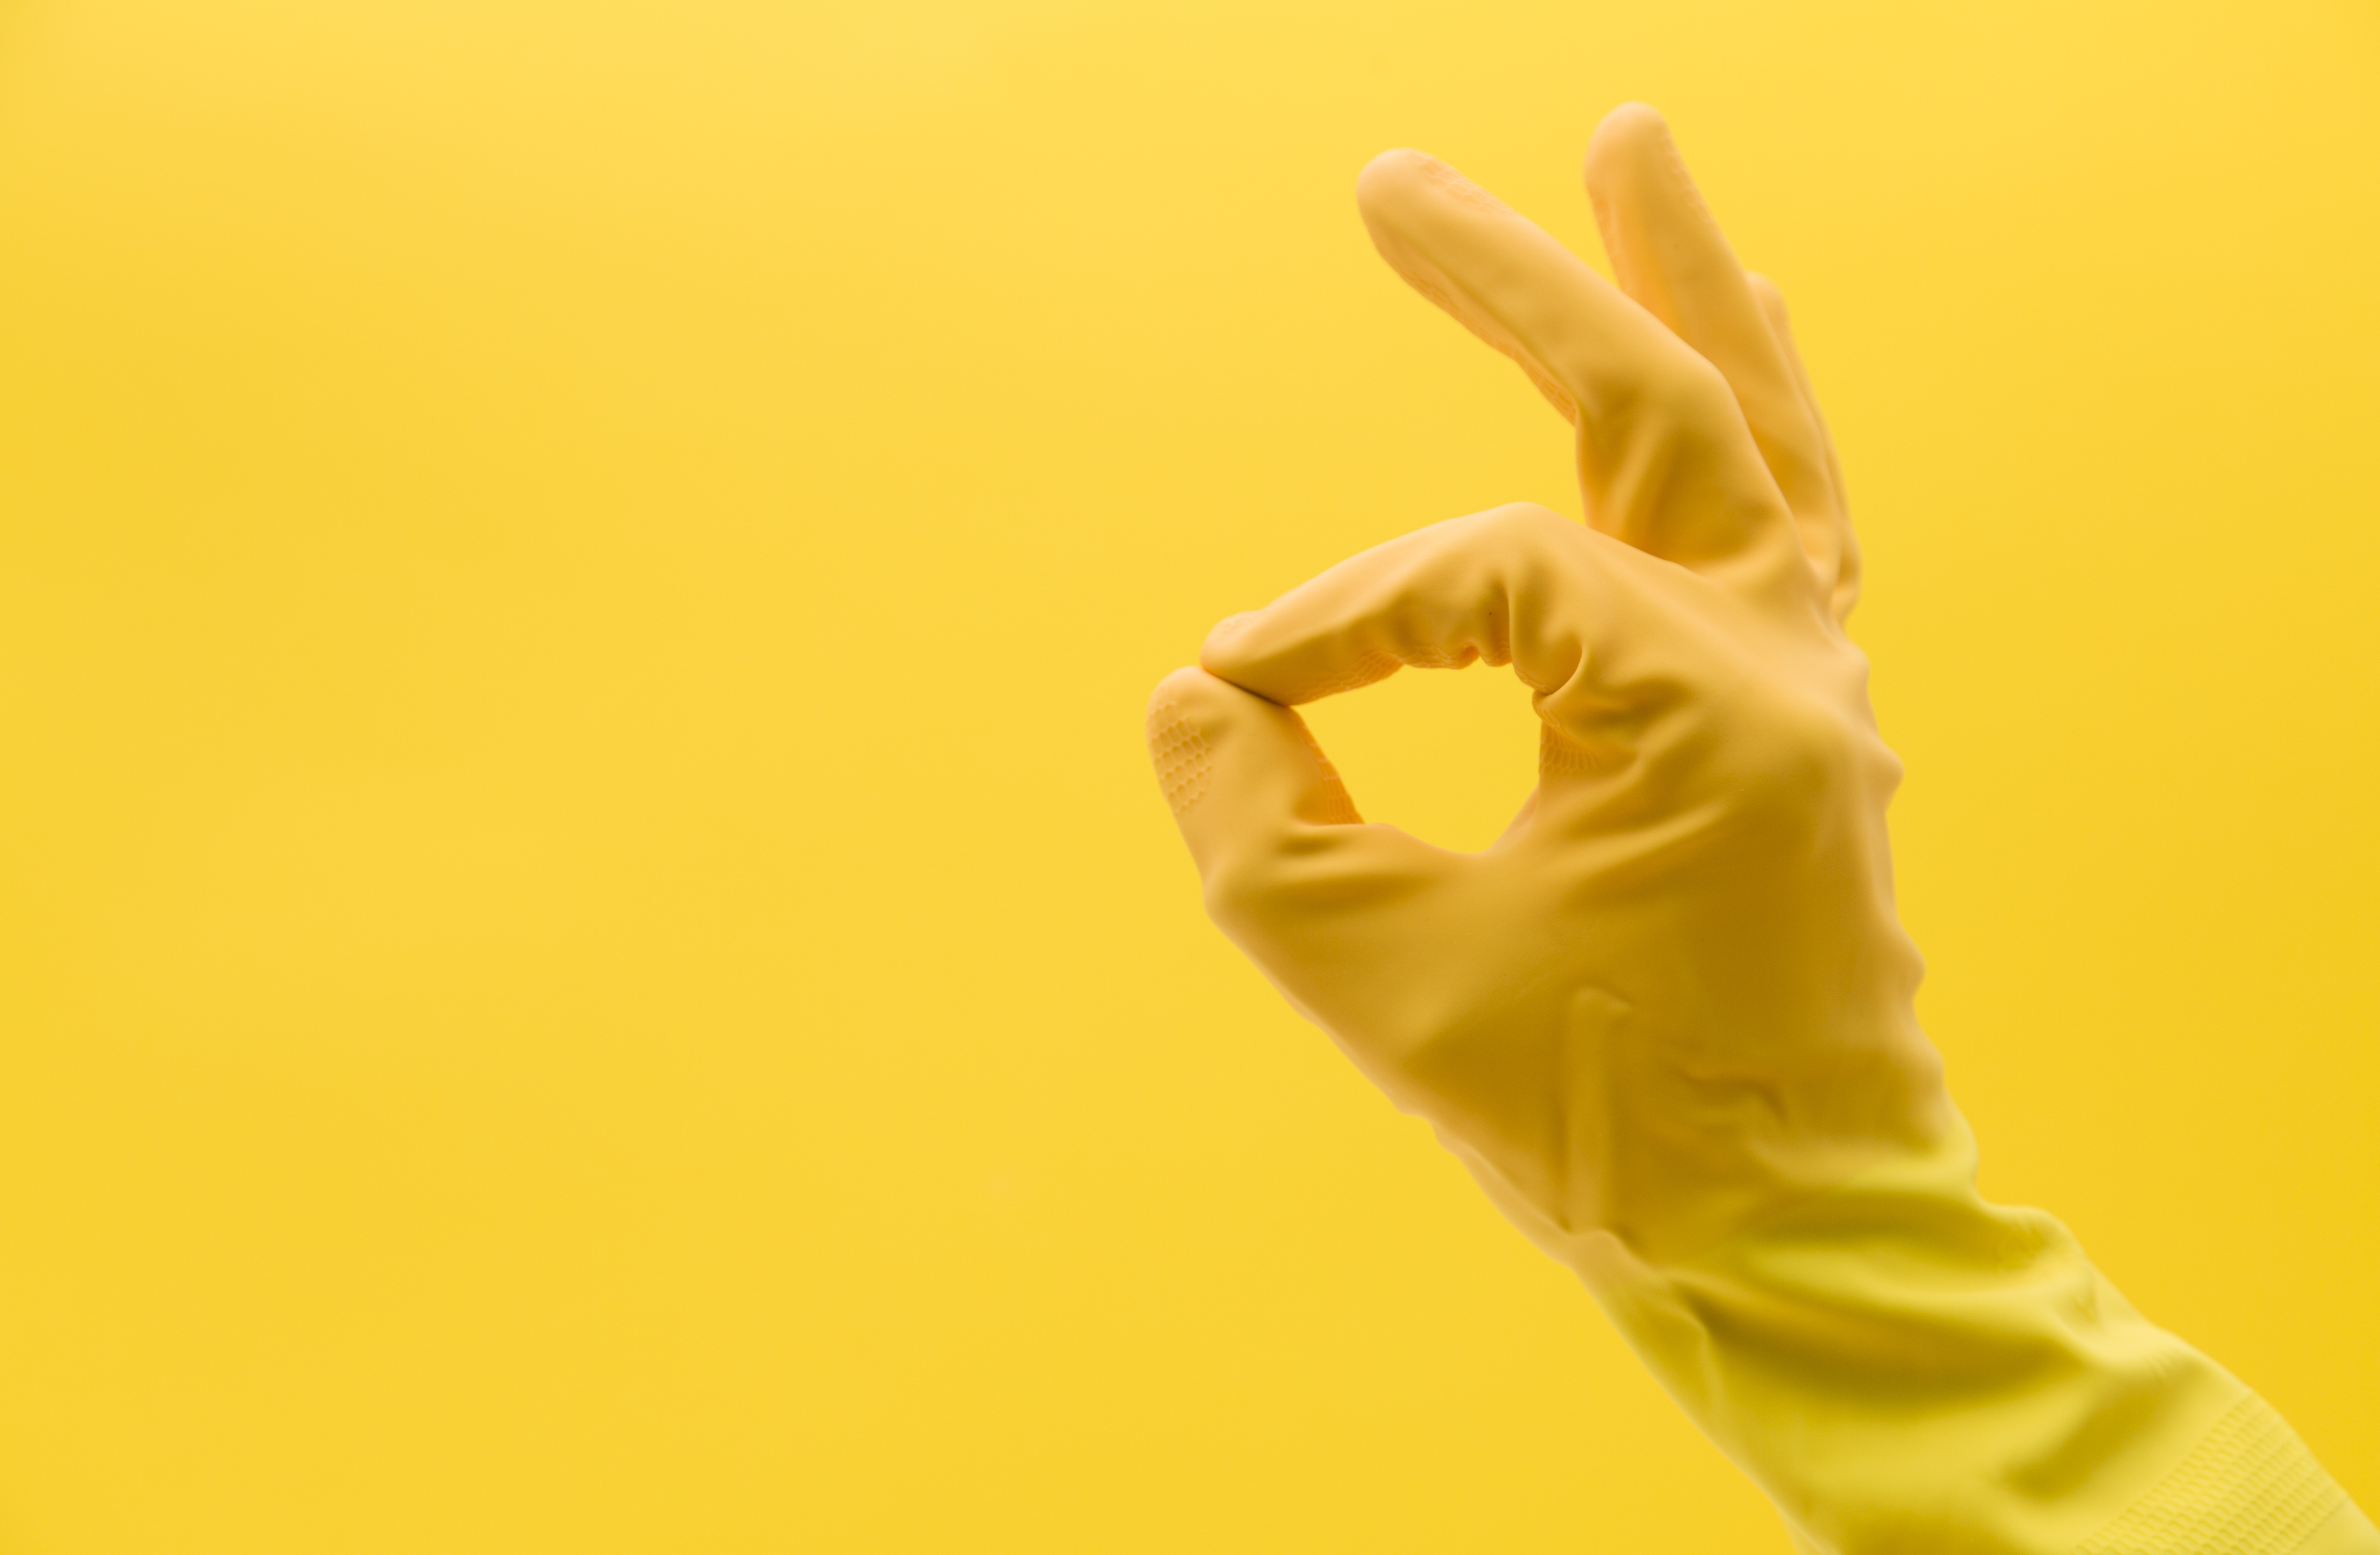 A yellow-gloved hand makes the okay symbol.